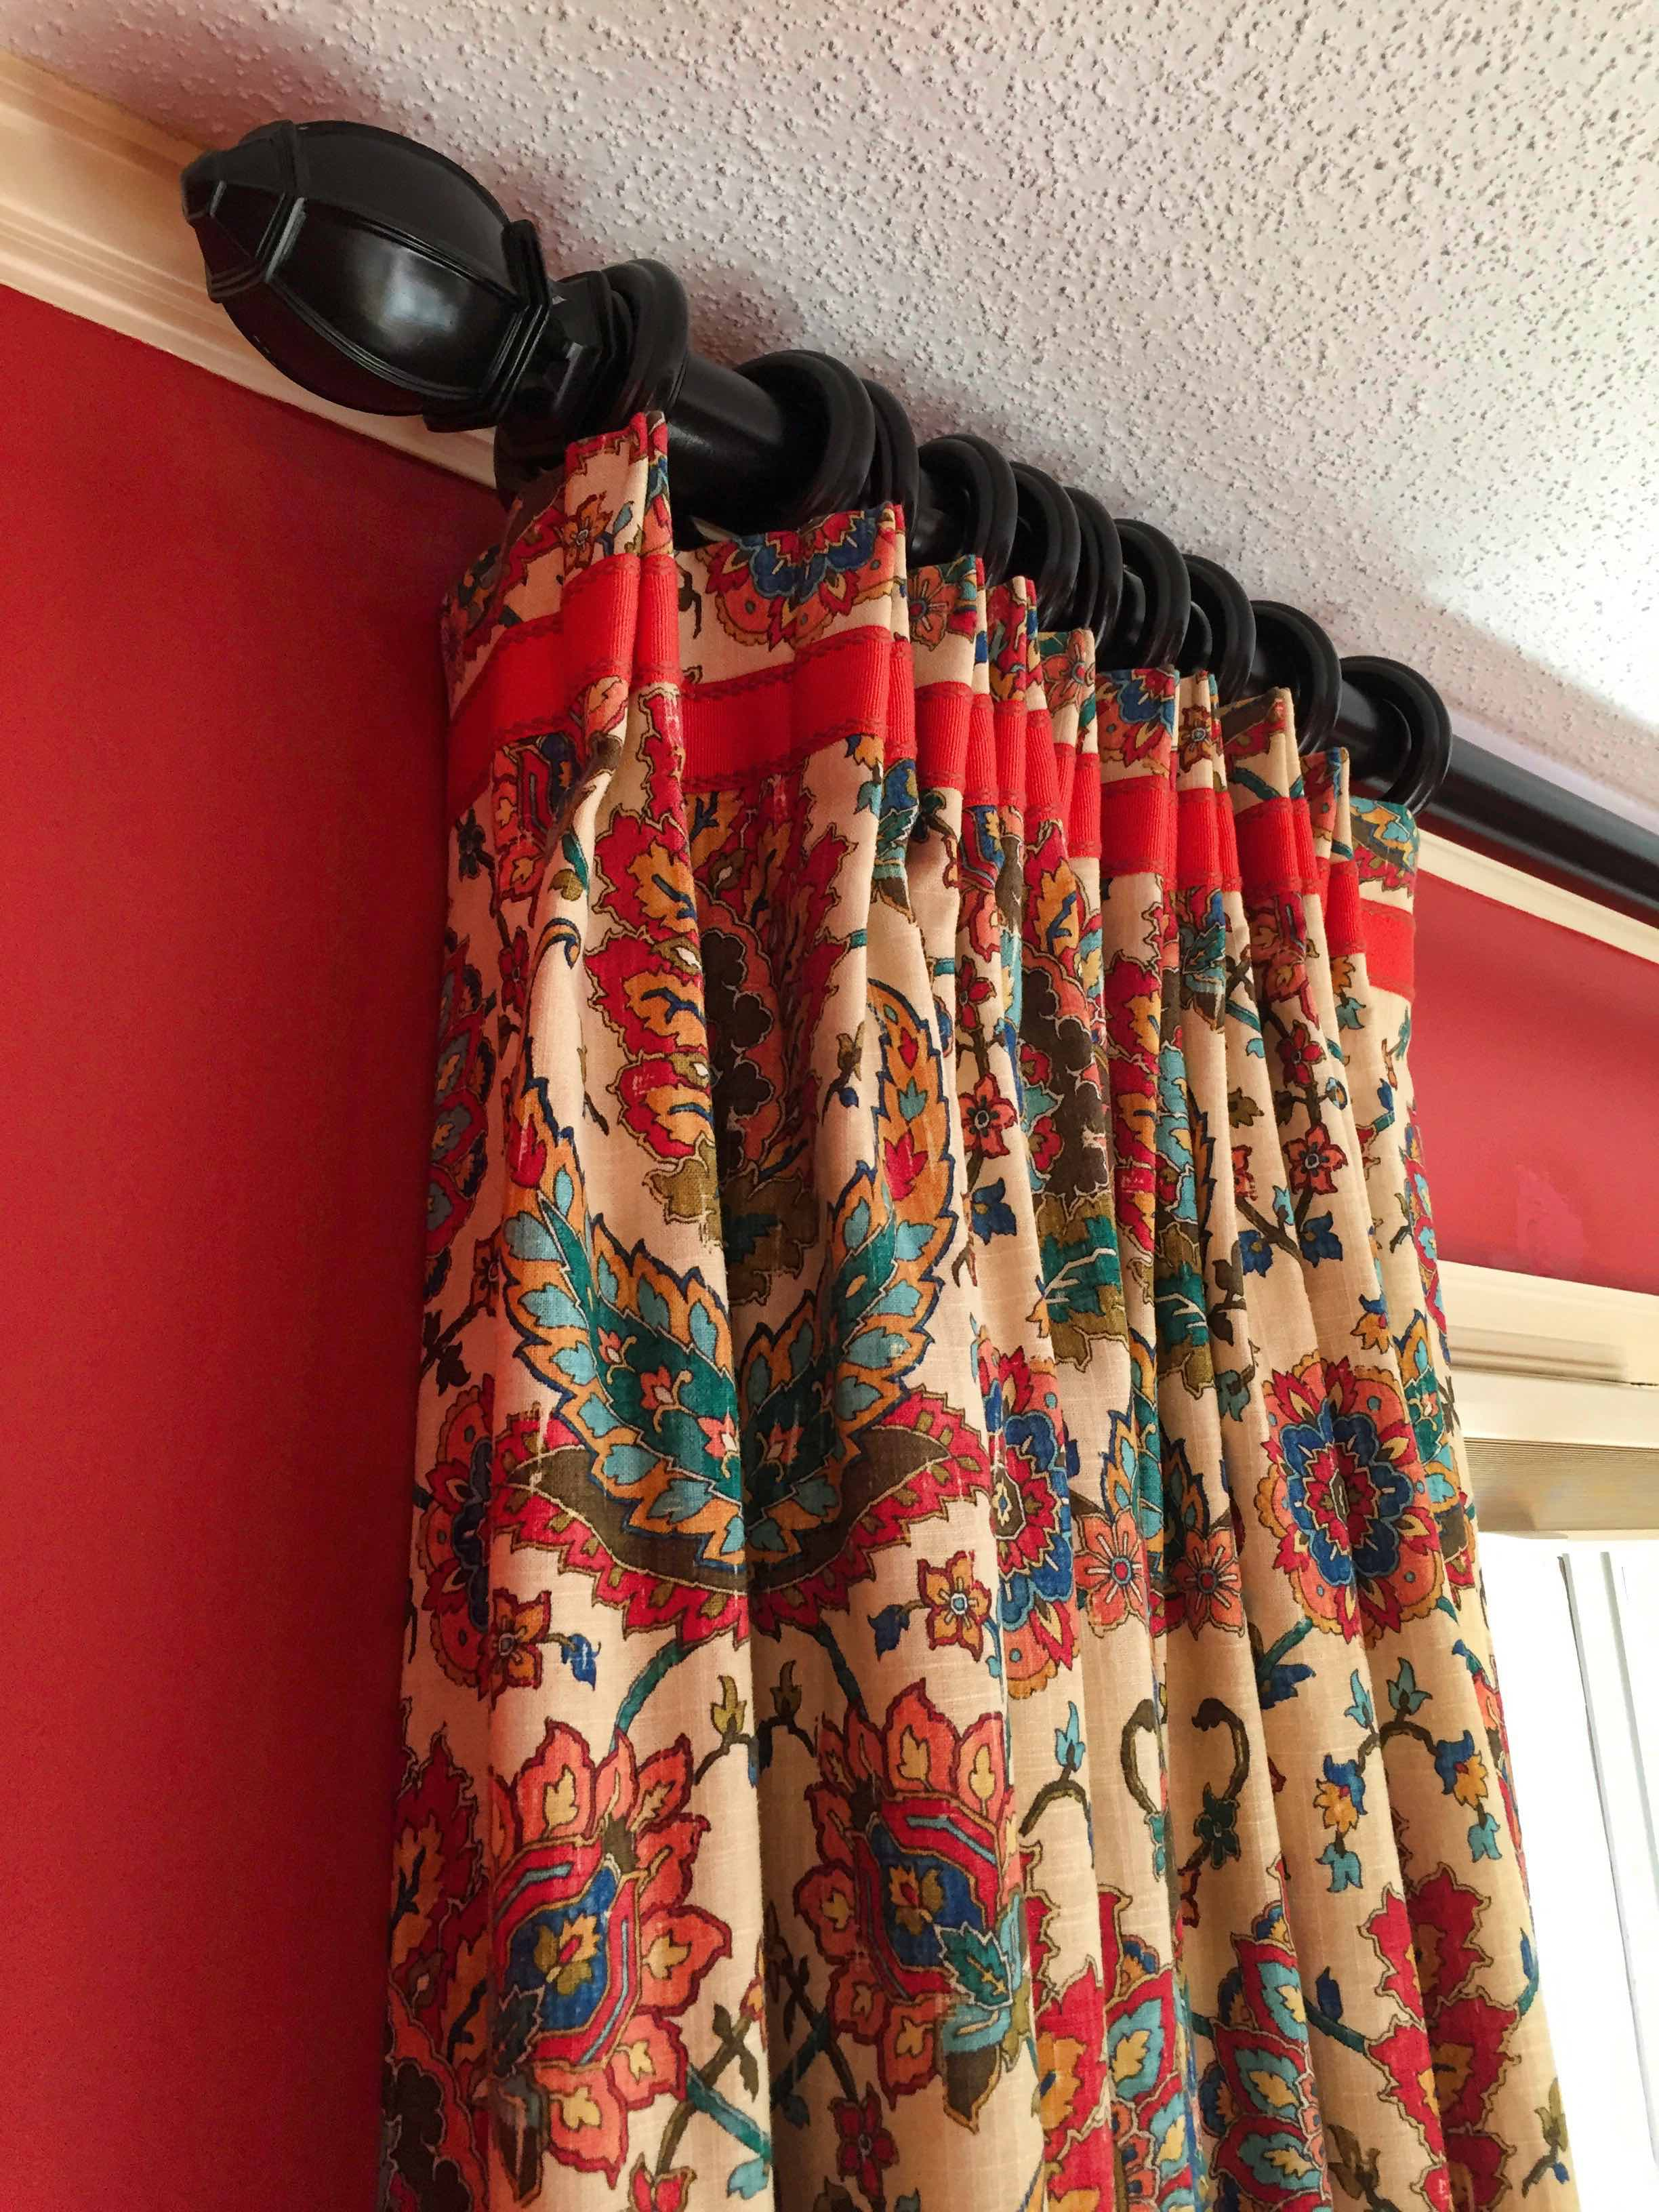 colorful_curtains.jpeg